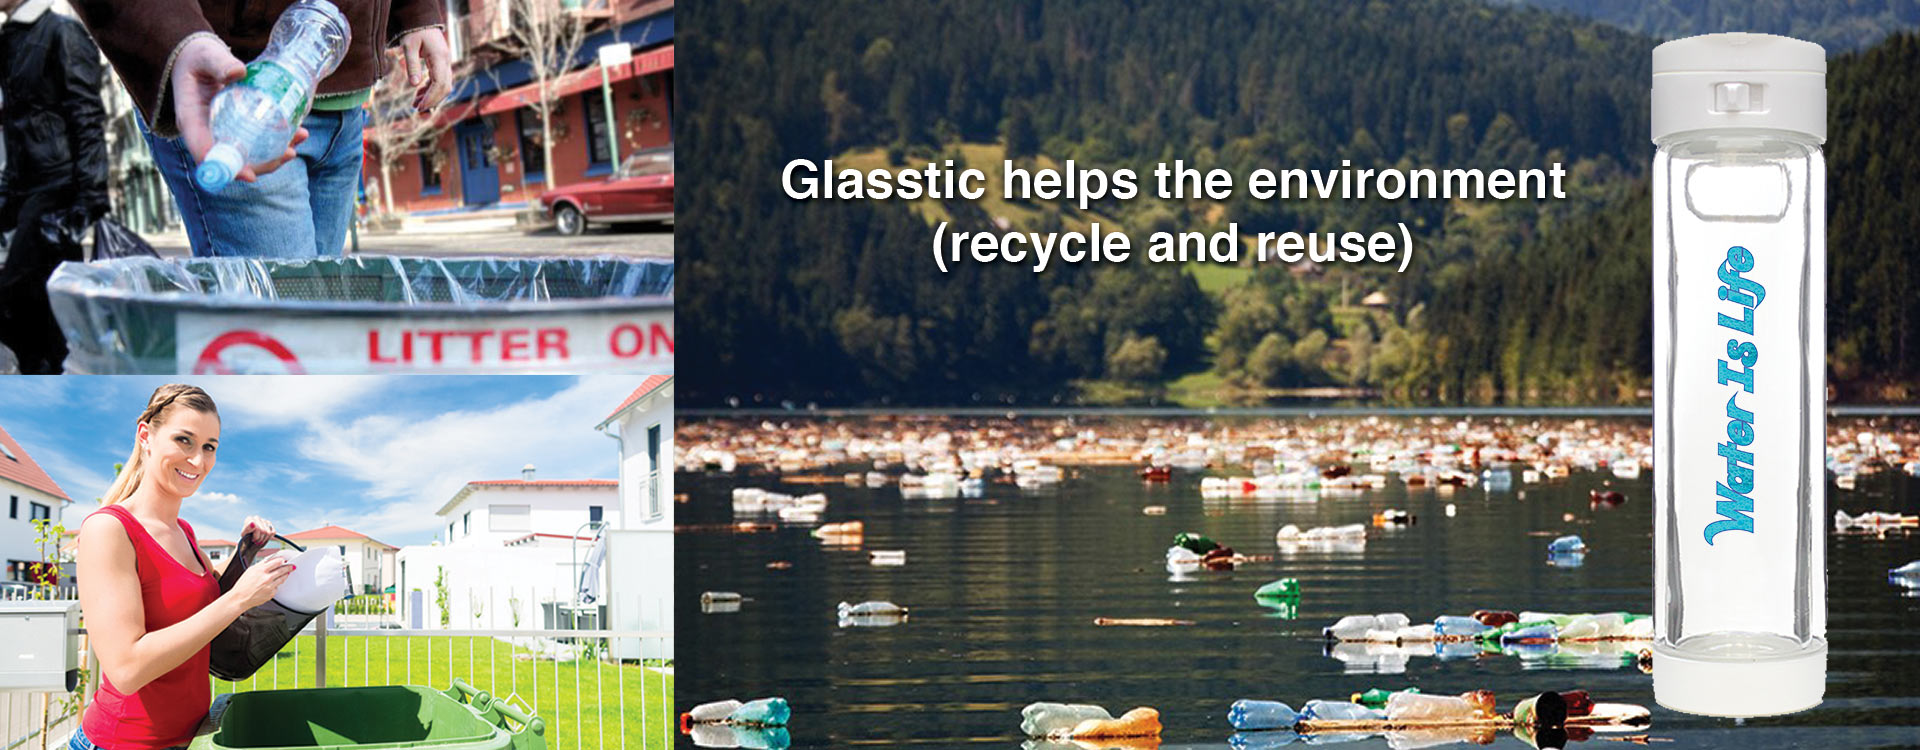 Glasstic - Good for the environment